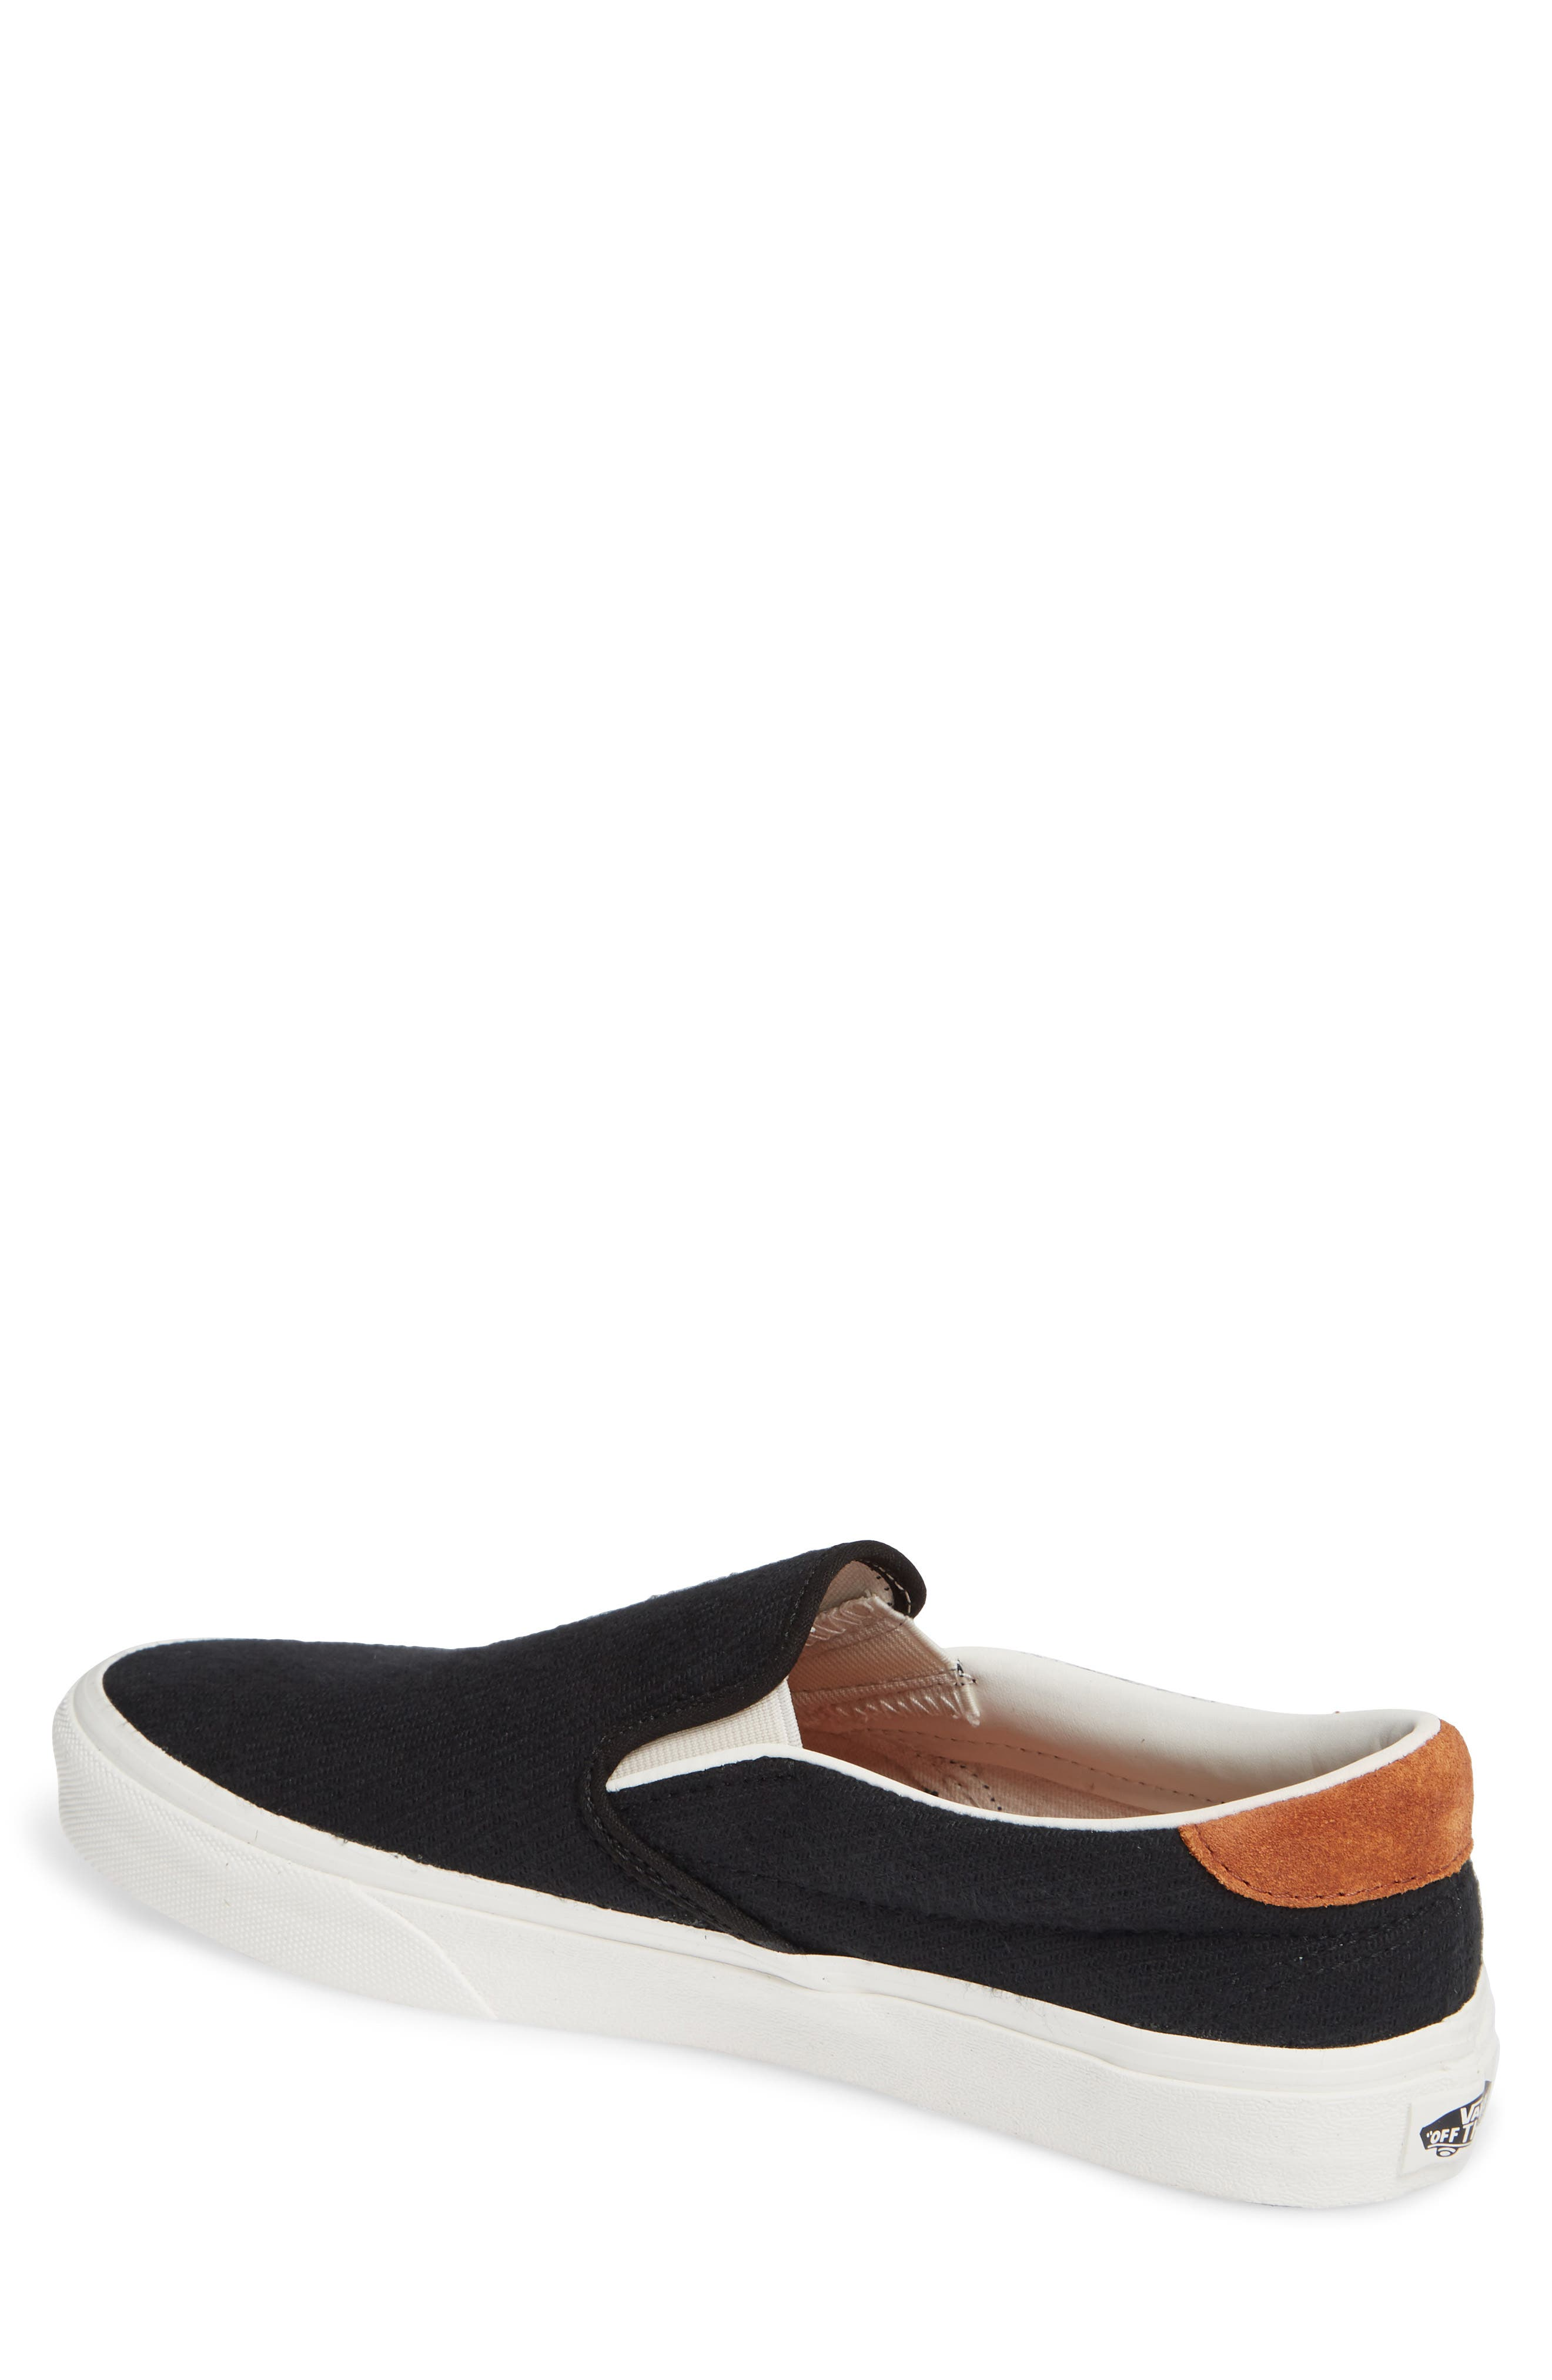 59 Classic Slip-On Sneaker,                             Alternate thumbnail 2, color,                             BLACK FLANNEL SUEDE